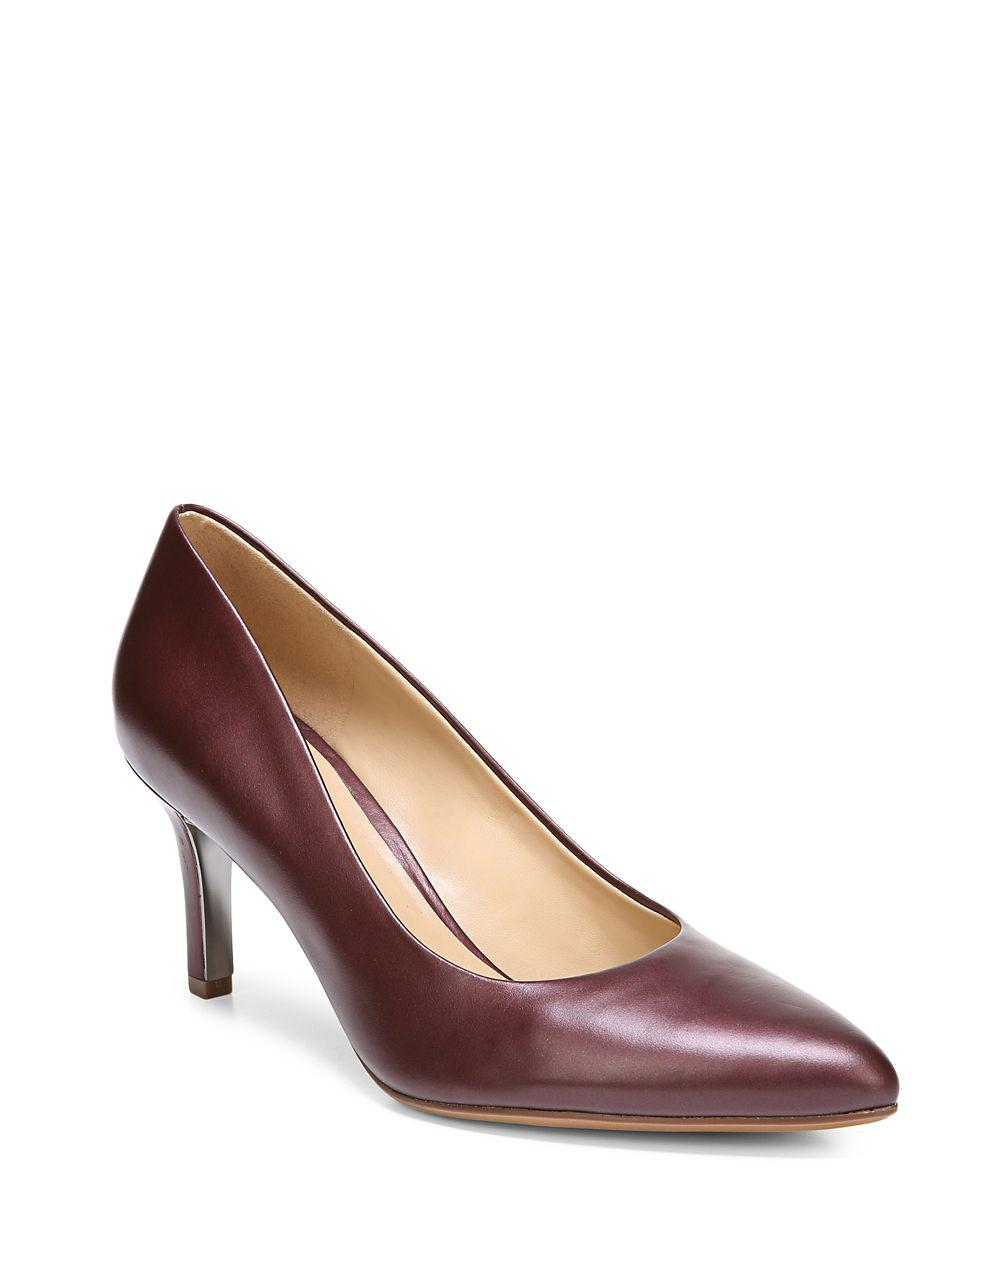 759a049ae519 Lyst - Naturalizer Natalie Leather Pumps in Brown